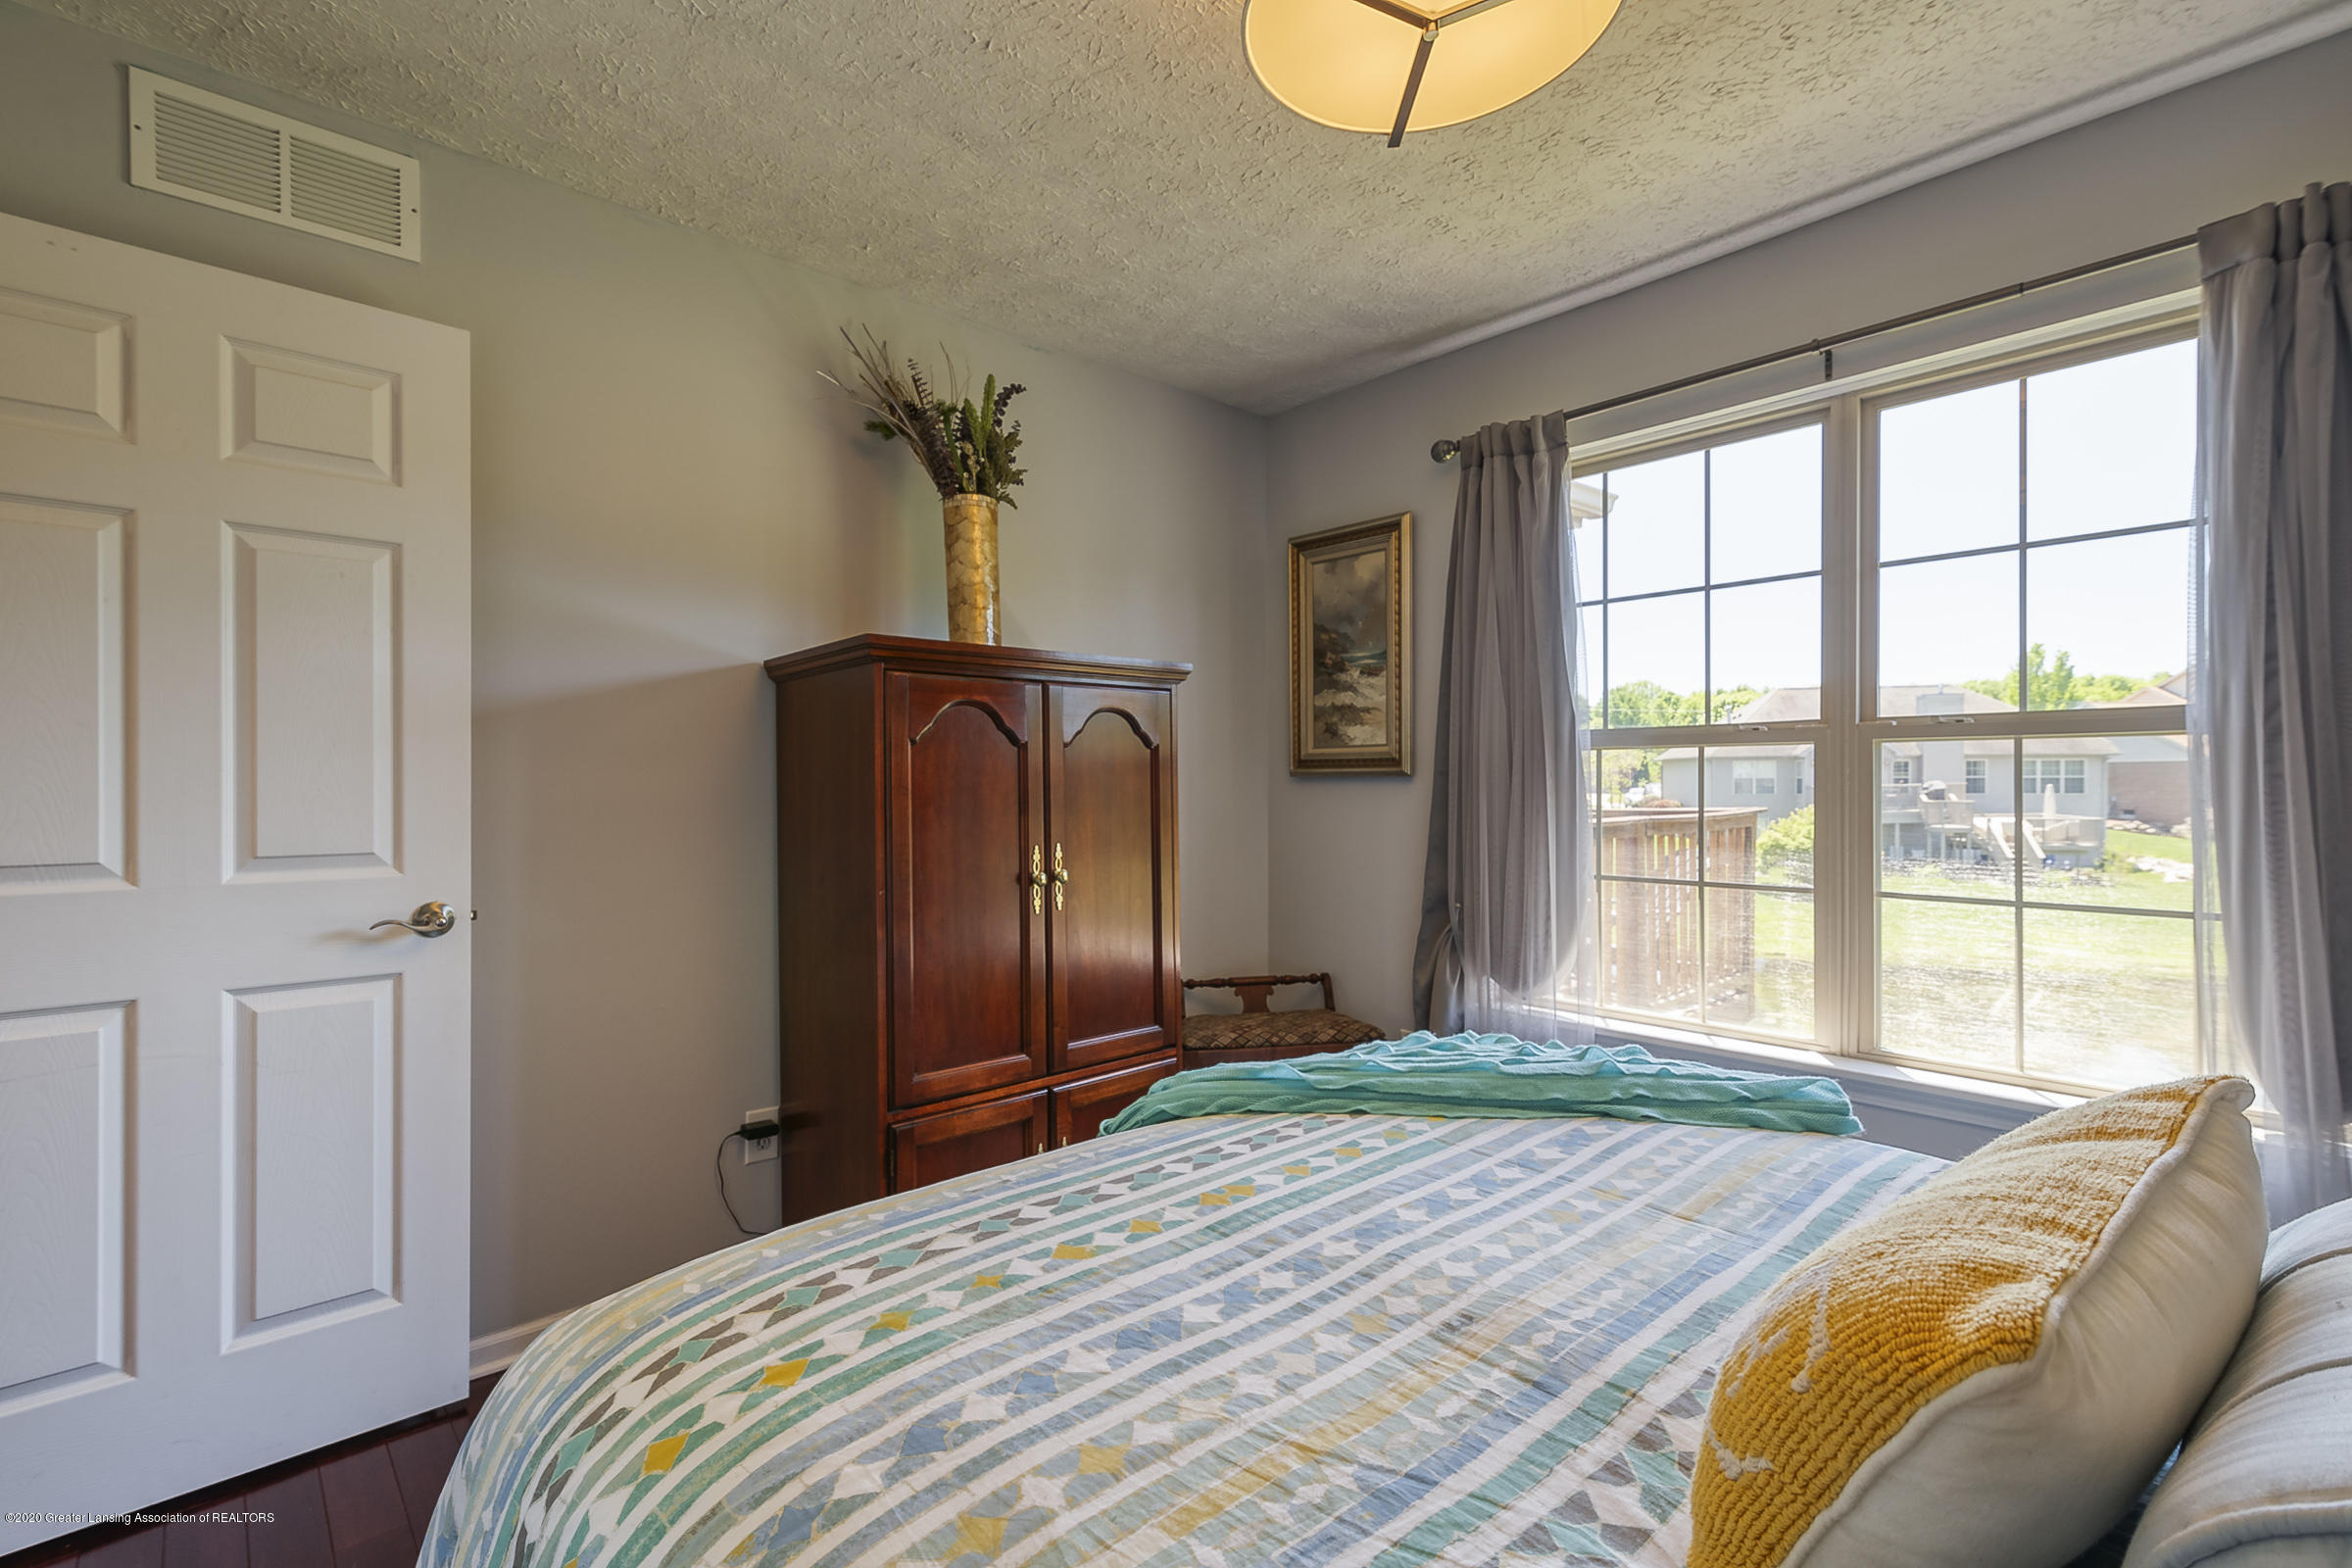 4092 Pheasant Run - BEDROOM - 29